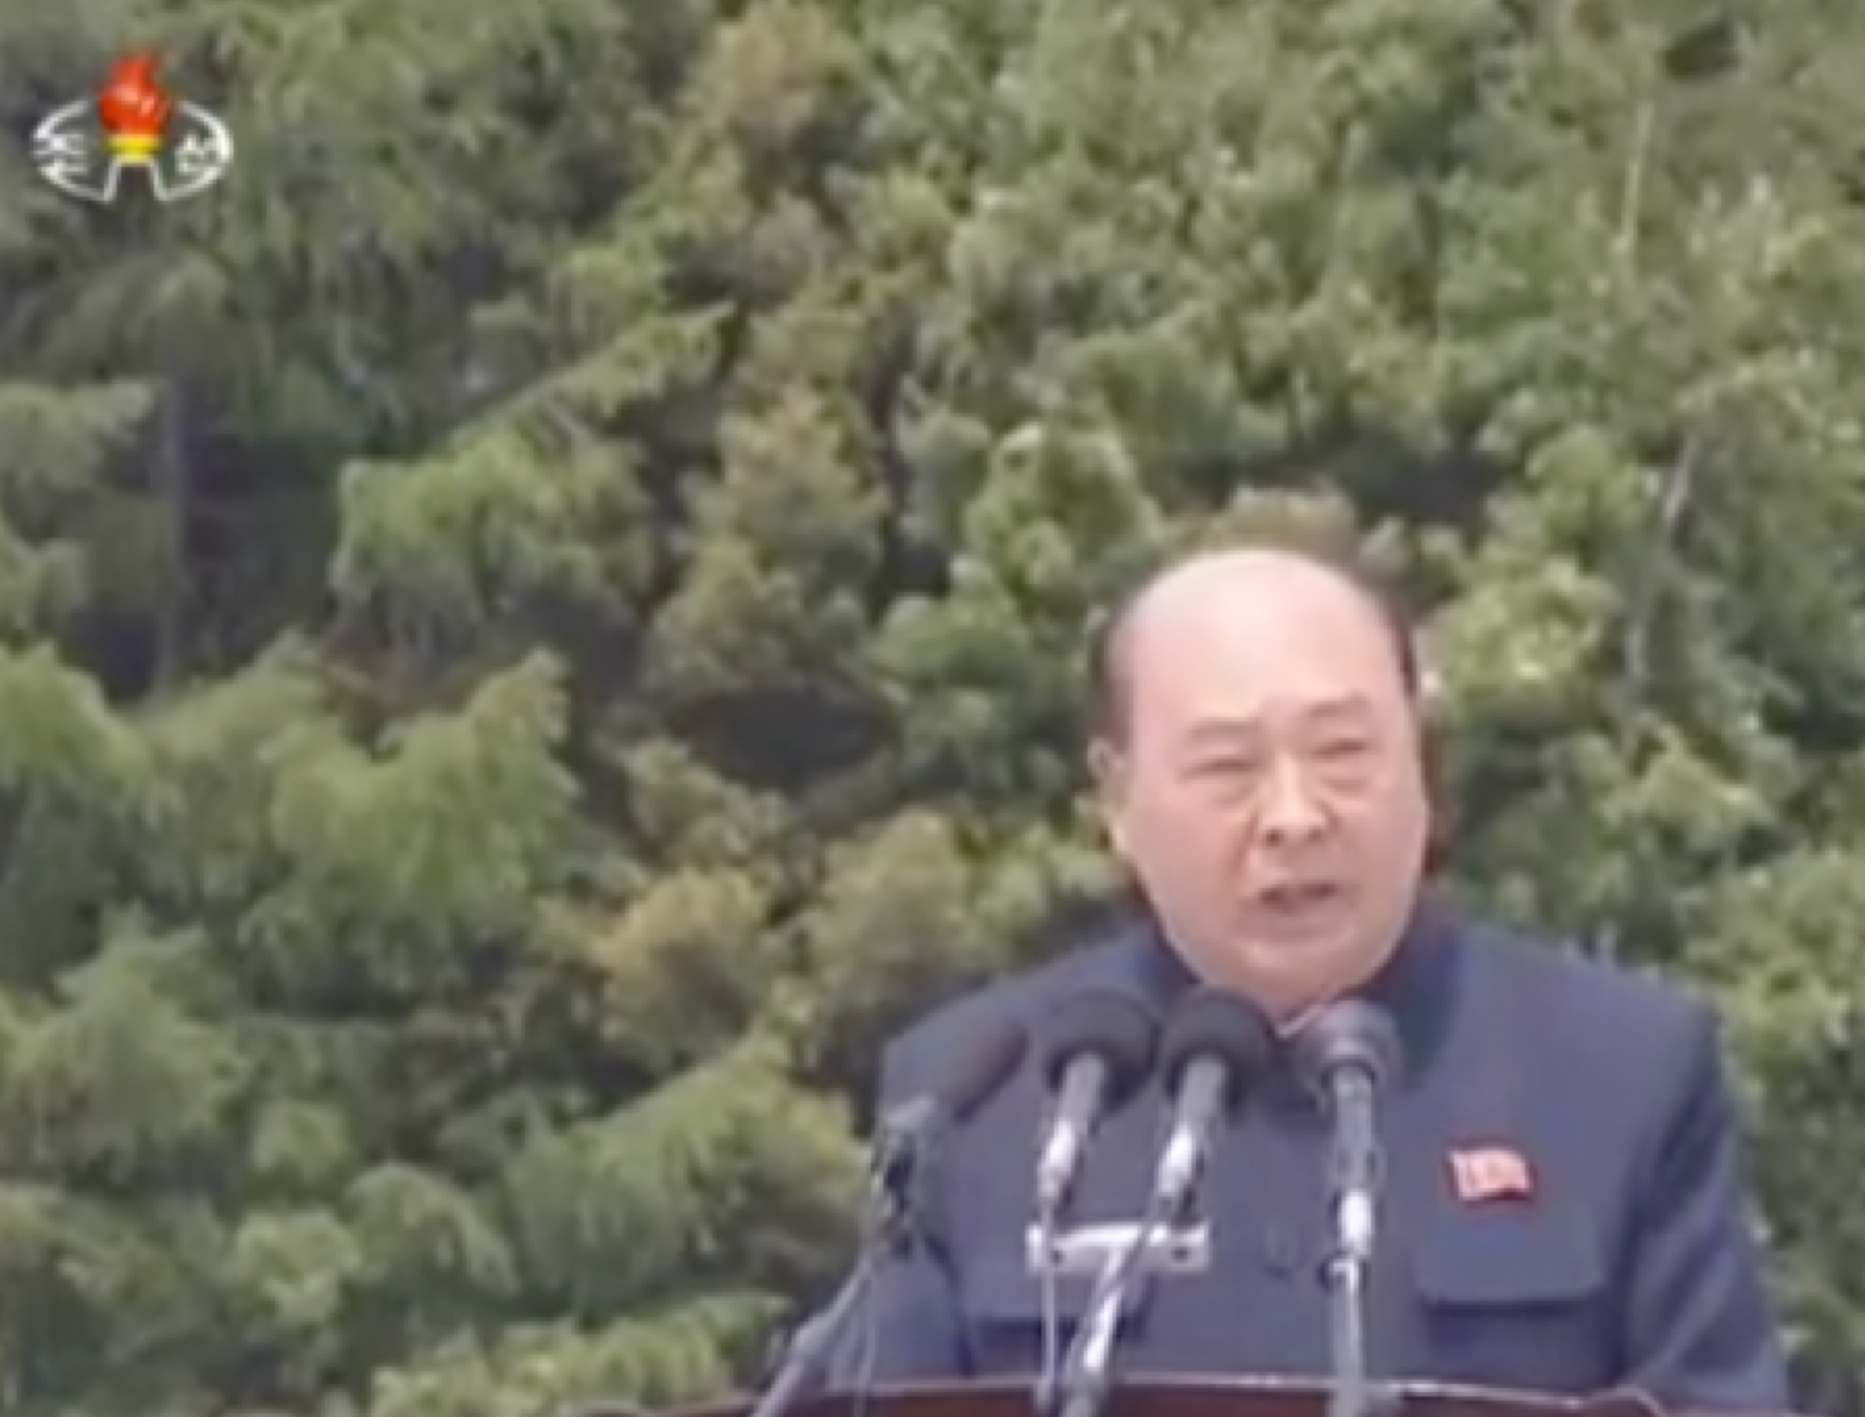 Chairman of the Yanggang WPK Provincial Committee RI Sang Won presides over a meeting marking the 60th anniversary of study tours at revolutionary battle sites in Samjiyo'n (Photo: Korean Central TV).